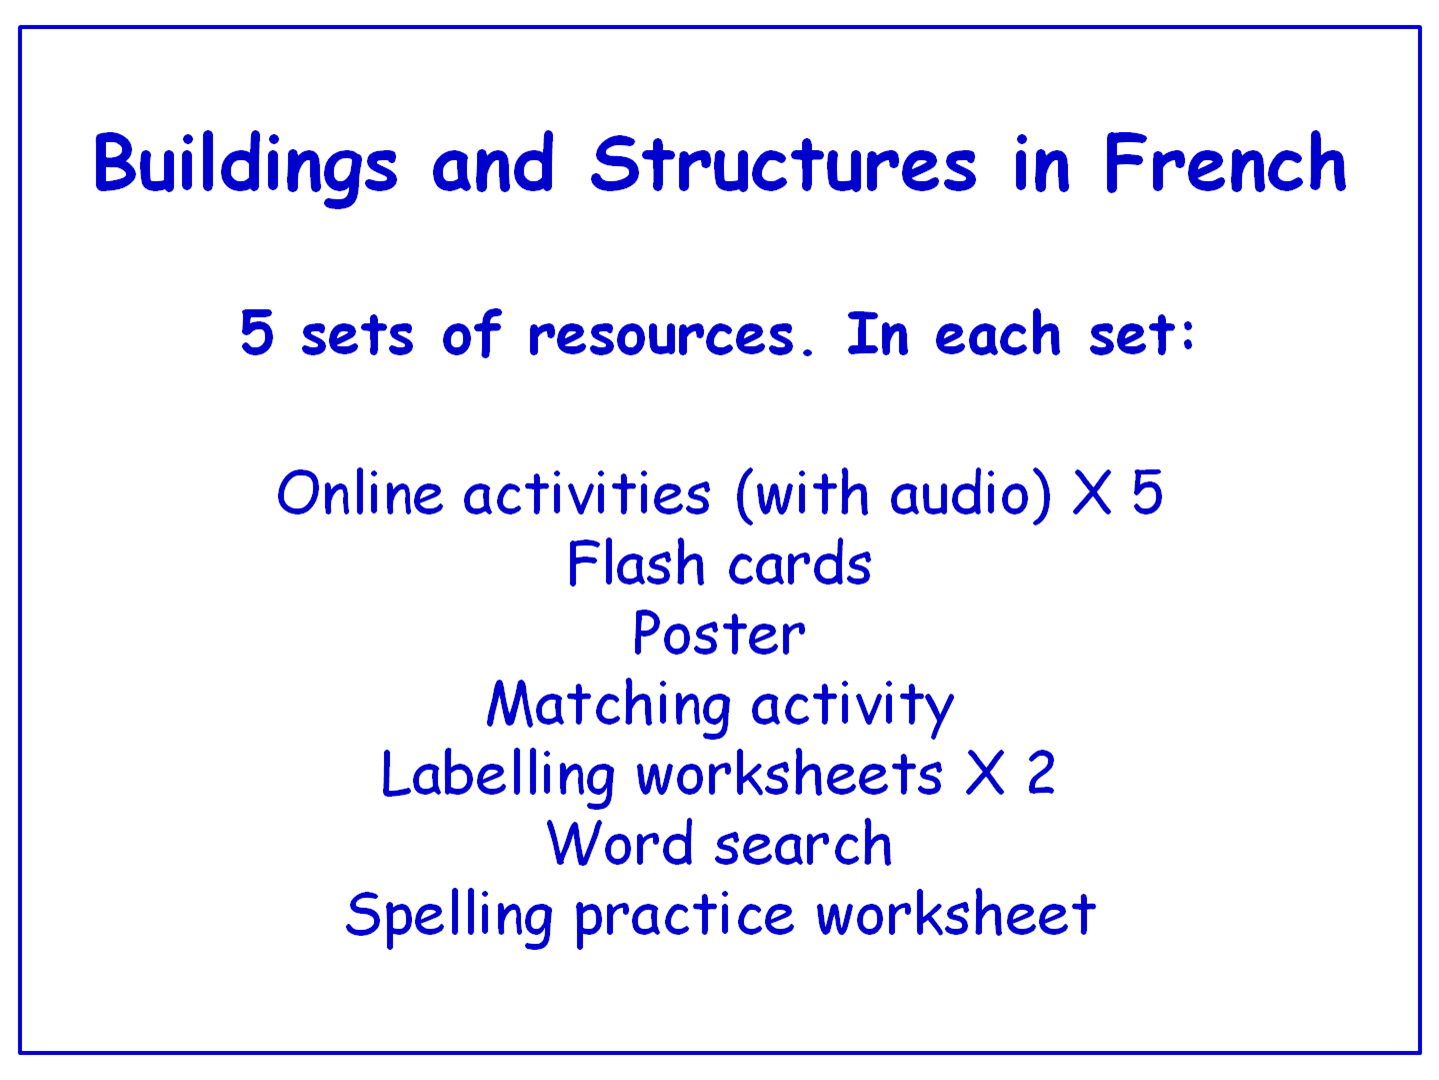 Buildings and Structures in French  Worksheets, Games, Activities and Flash Cards (with audio) Bundle (5 sets)